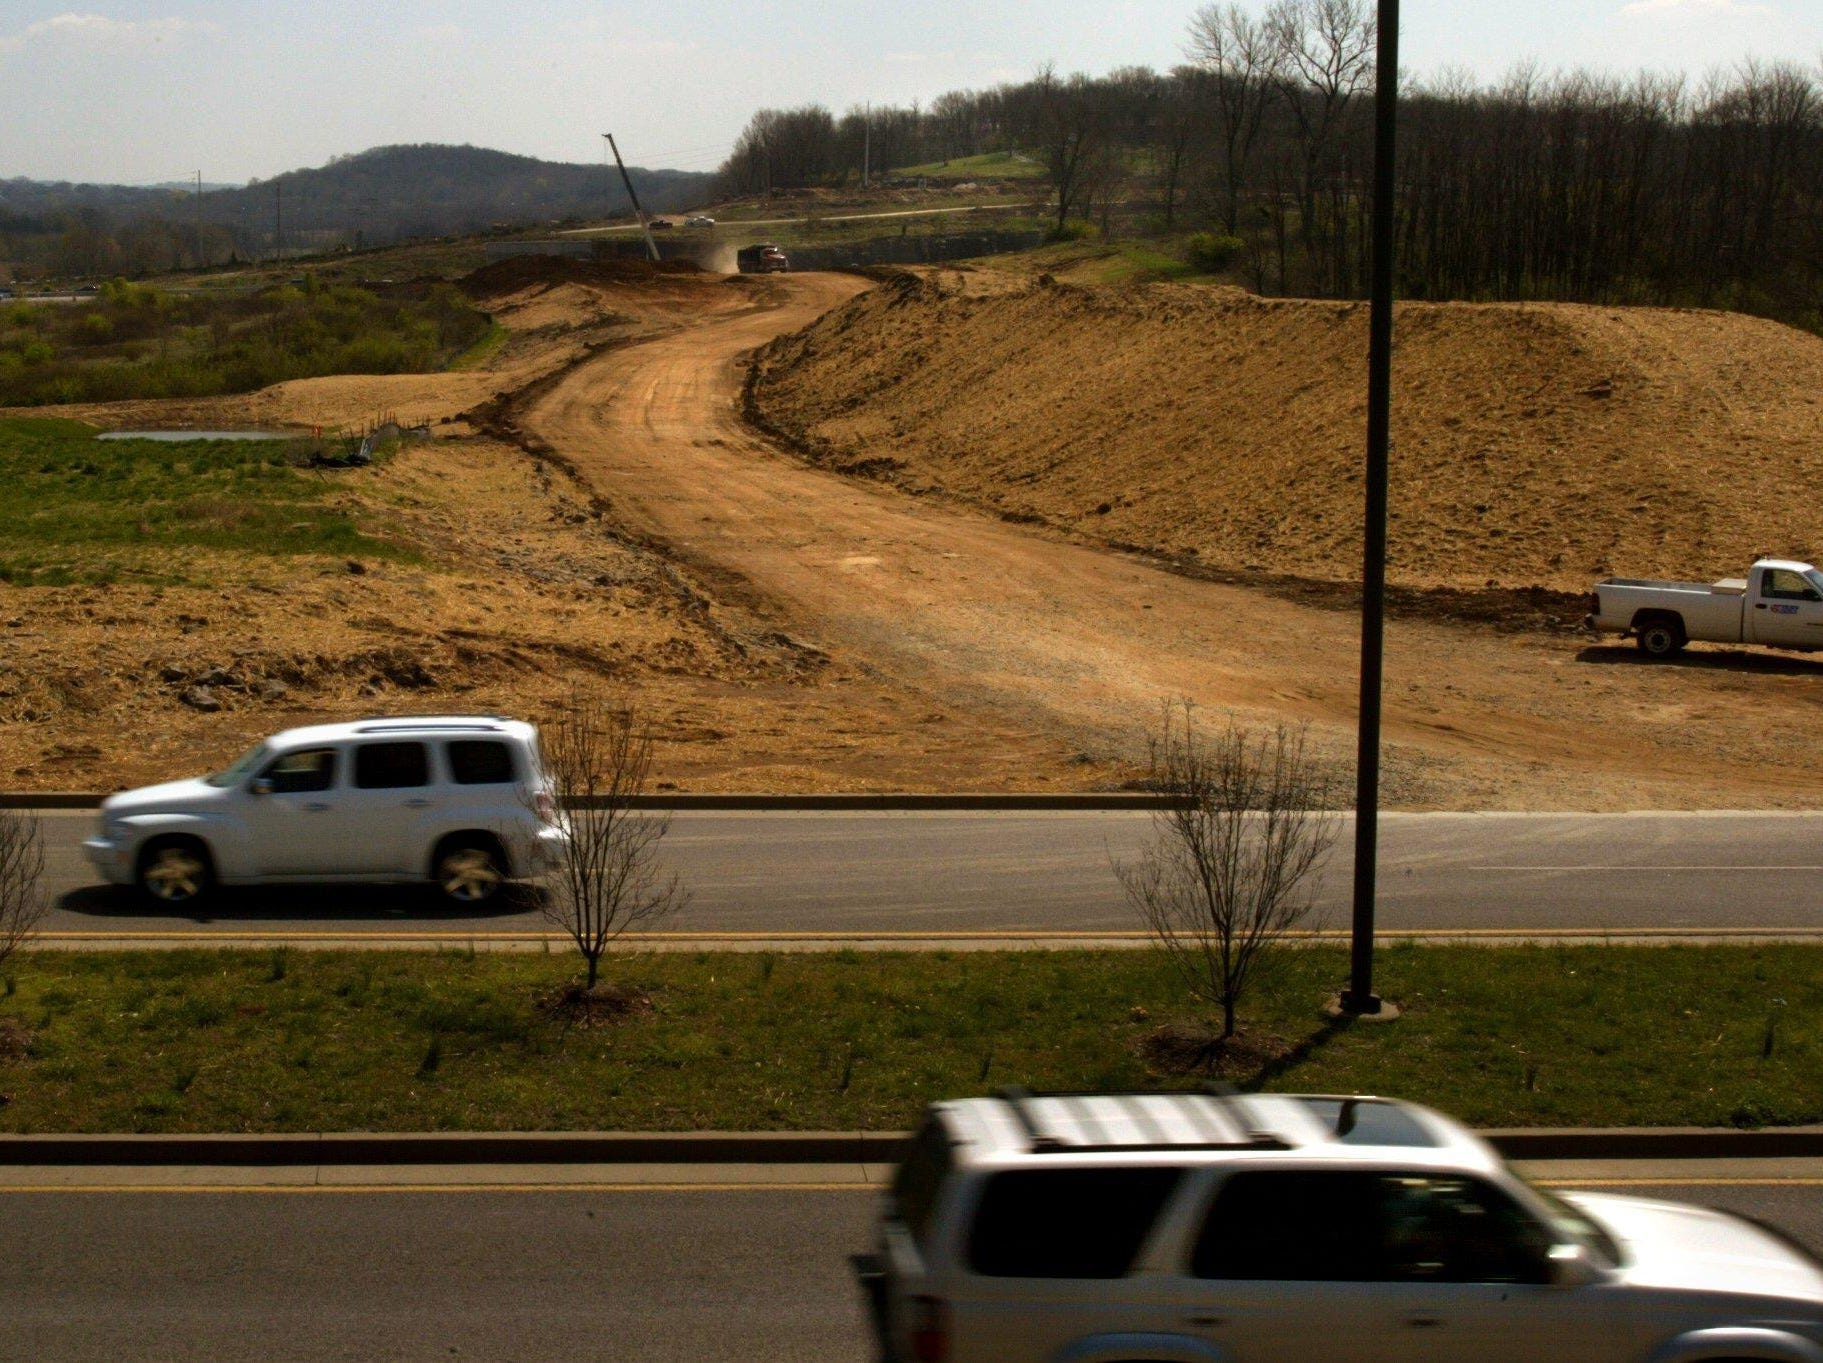 Motorists drive past the future McEwen interchange on Mallory Lane in Cool Springs in 2006. The construction has drawn interest from business developers for the area.